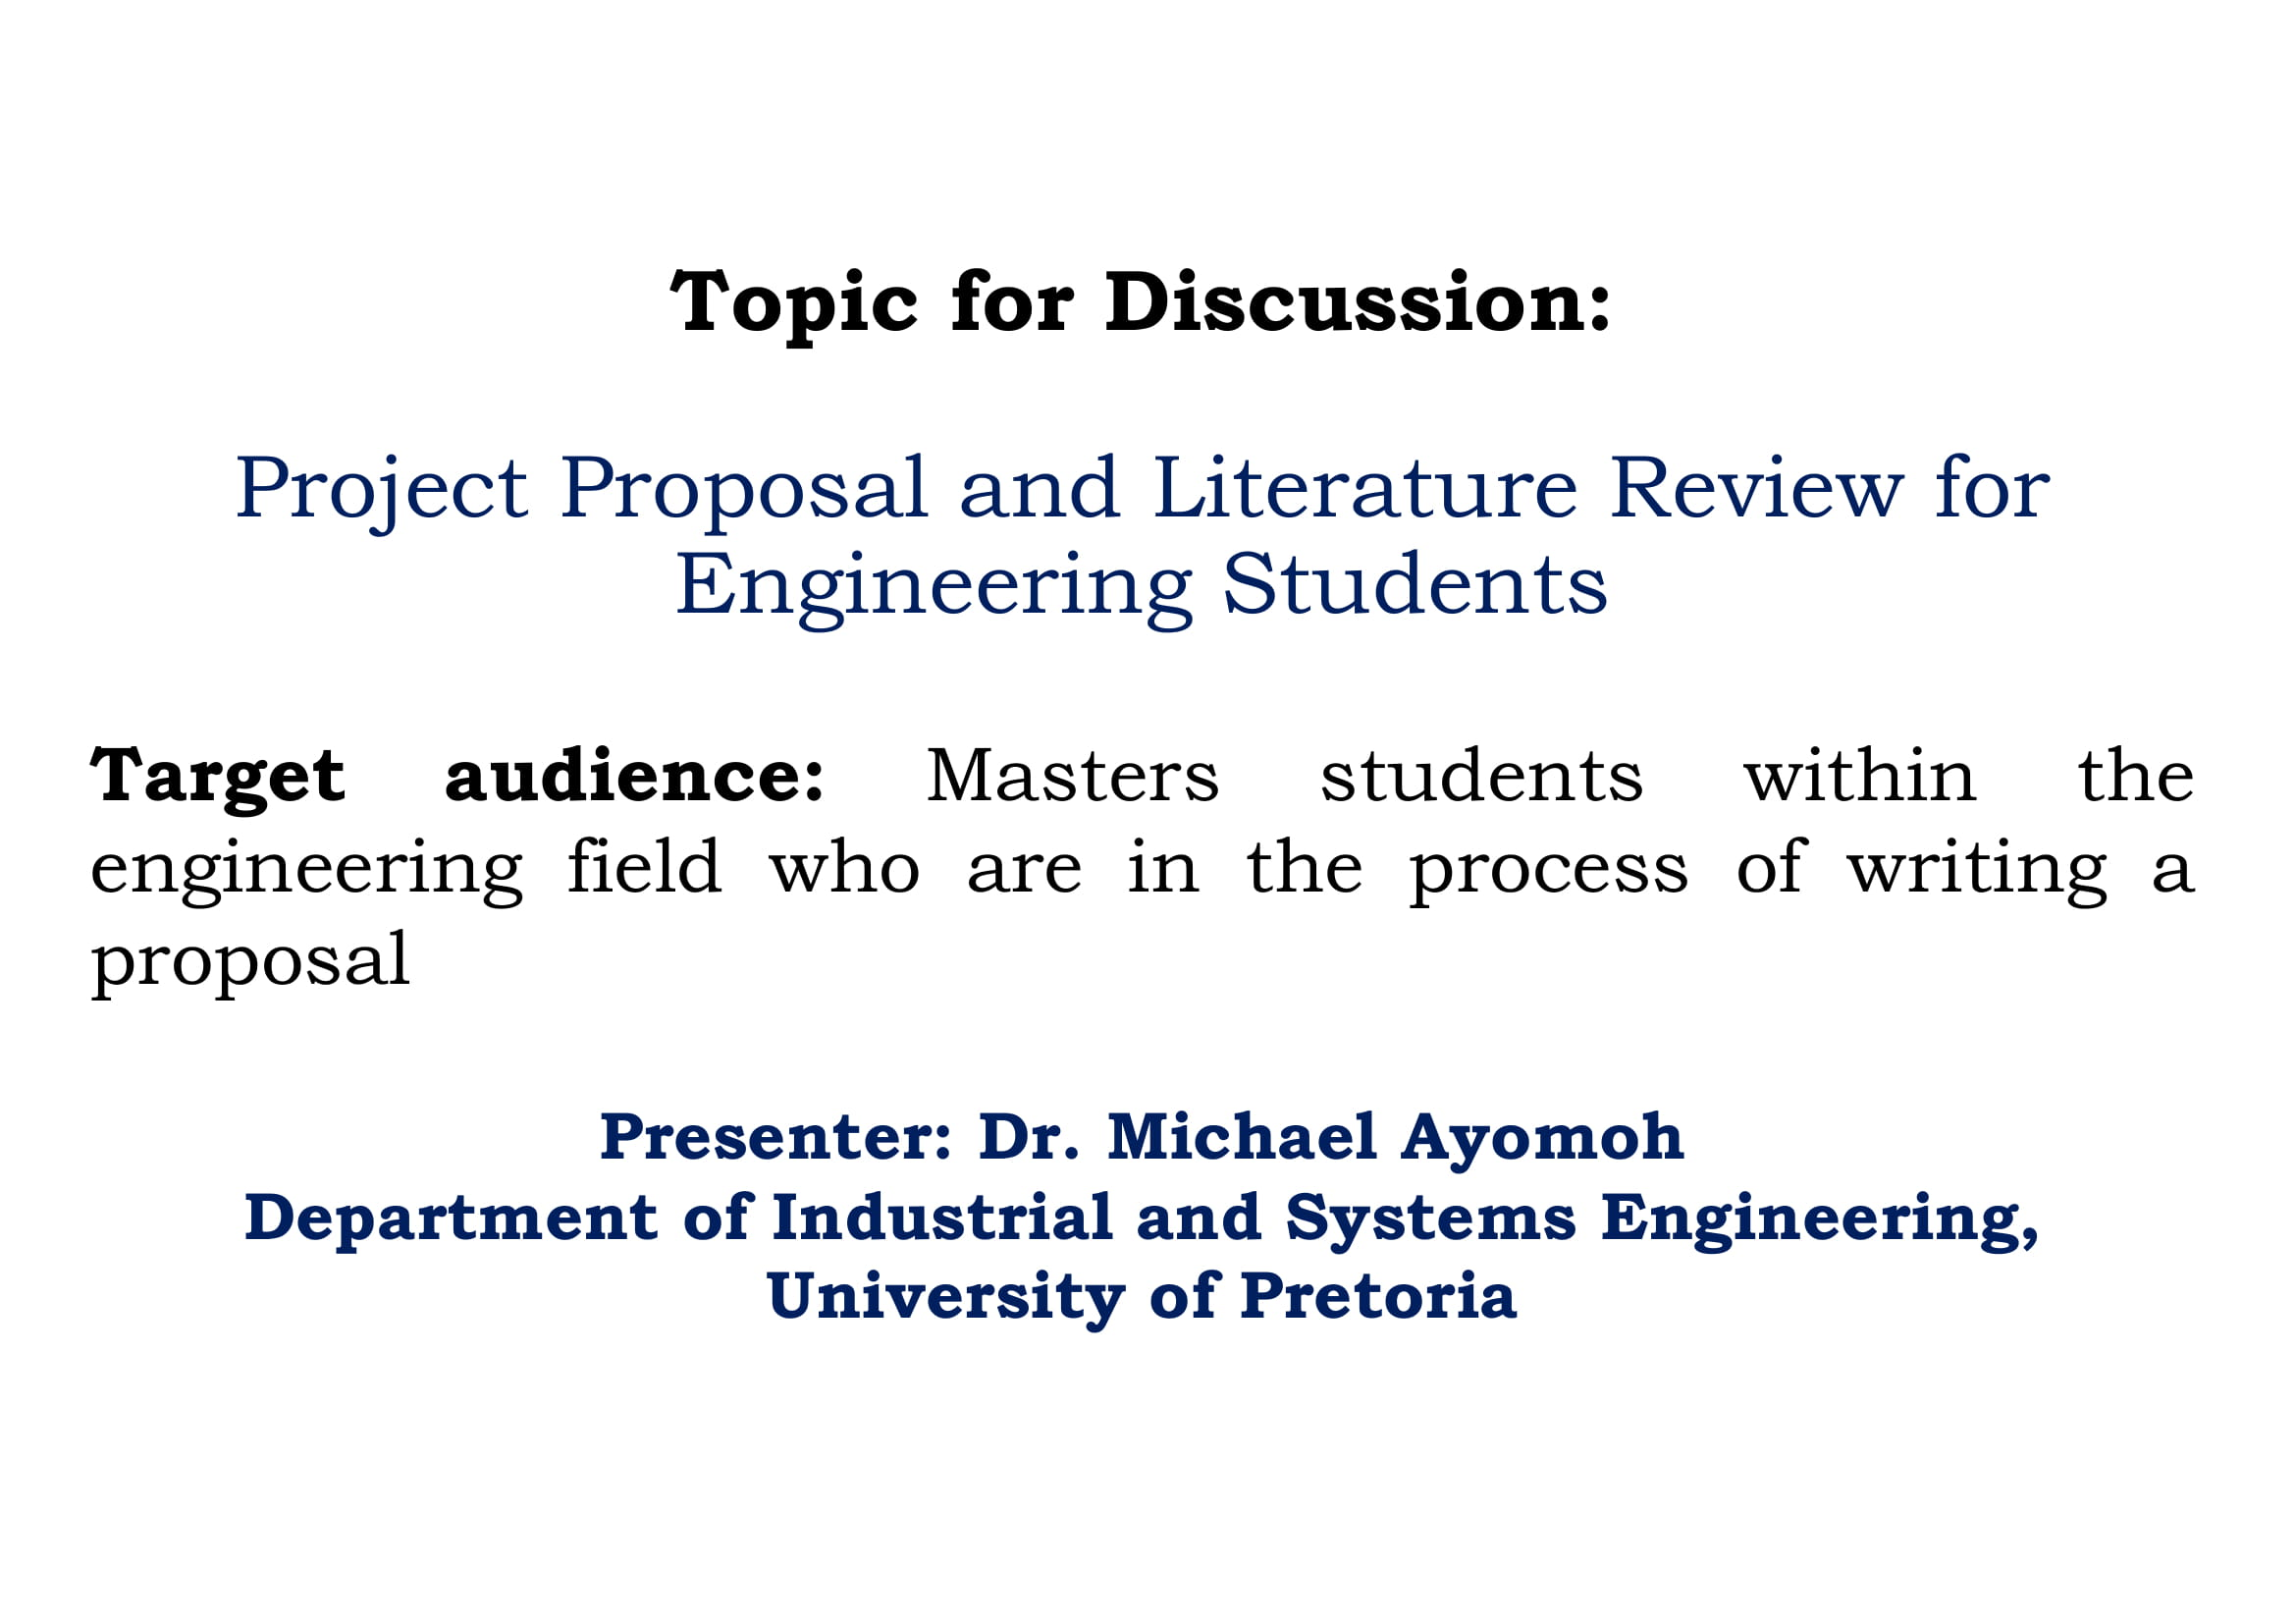 project proposal and literature review for engineer students example 011